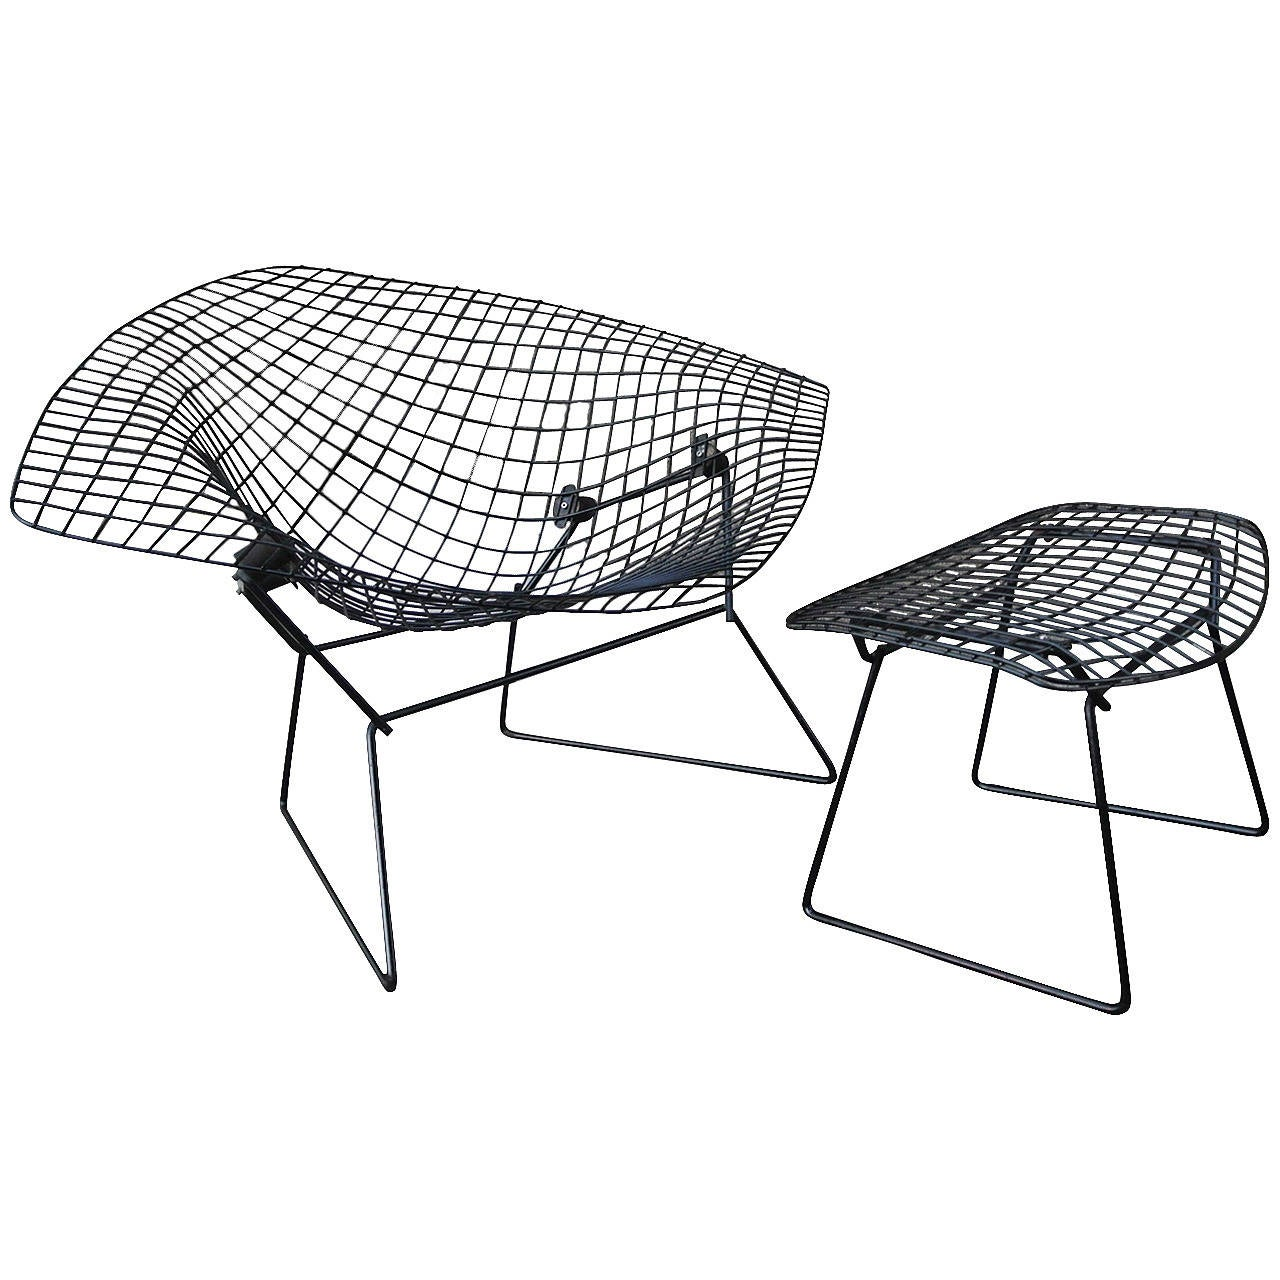 Bertoia diamond chair dimensions - Diamond Chair W Ottoman By Harry Bertoia For Knoll 1